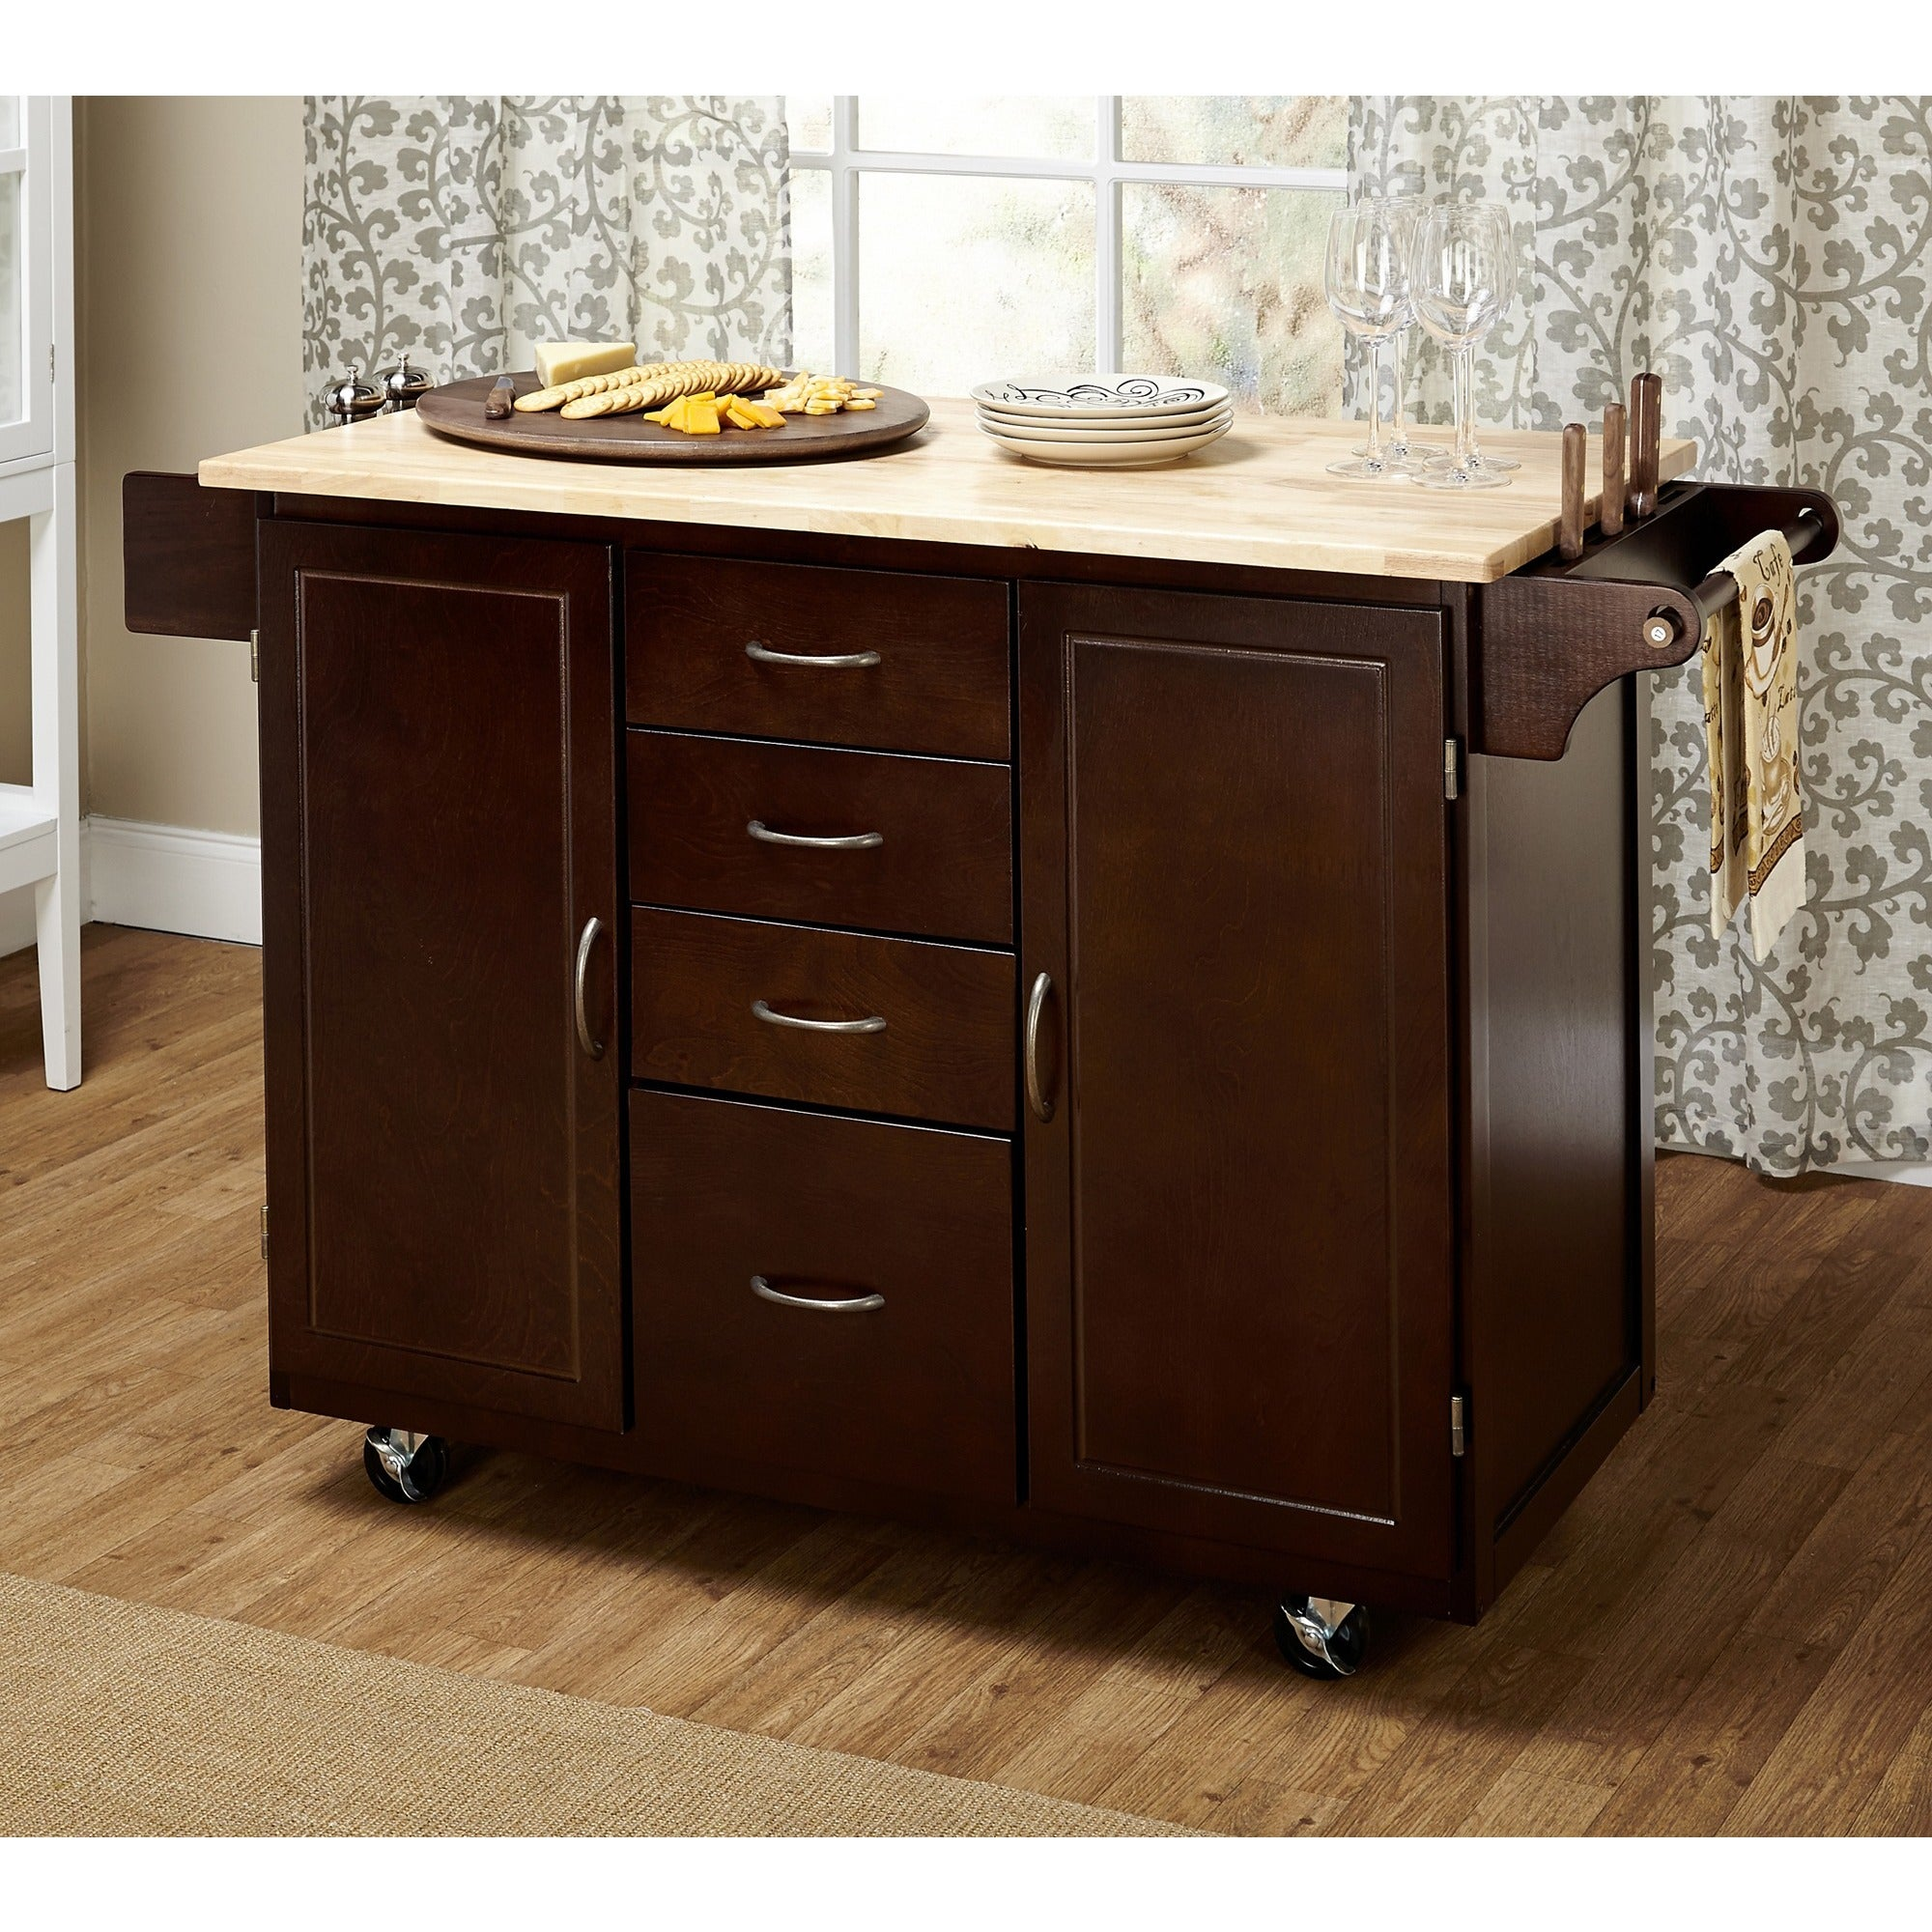 Genial Shop Simple Living Espresso/Natural Country Cottage Kitchen Cart   Free  Shipping Today   Overstock.com   8410337